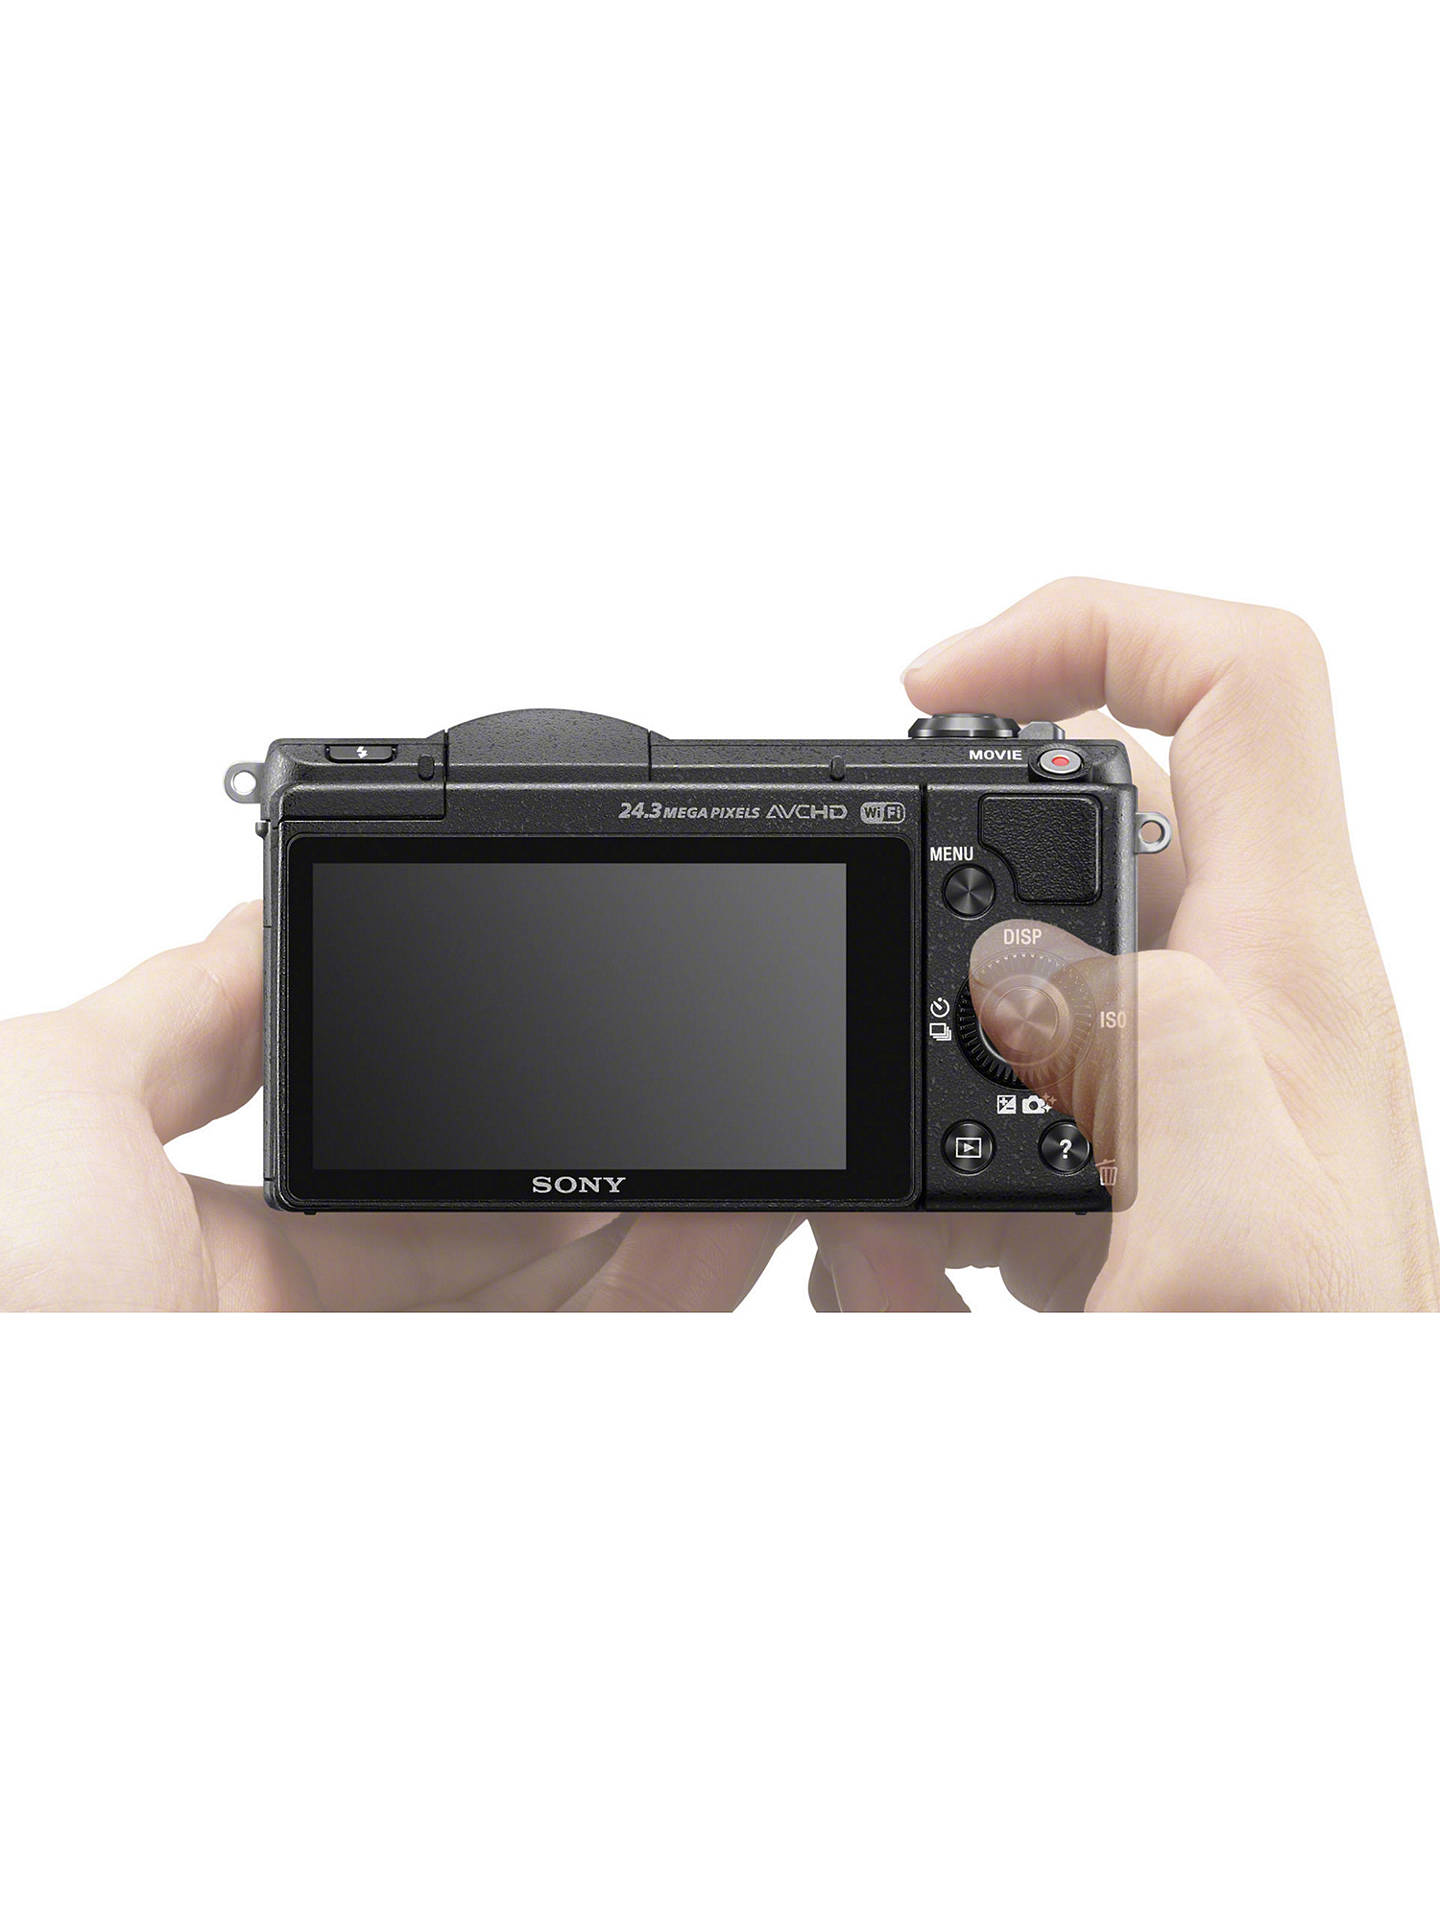 Sony A5100 Compact System Camera with 16-50mm OSS Lens, HD 1080p, 24 3MP,  Wi-Fi, NFC, OLED, 3